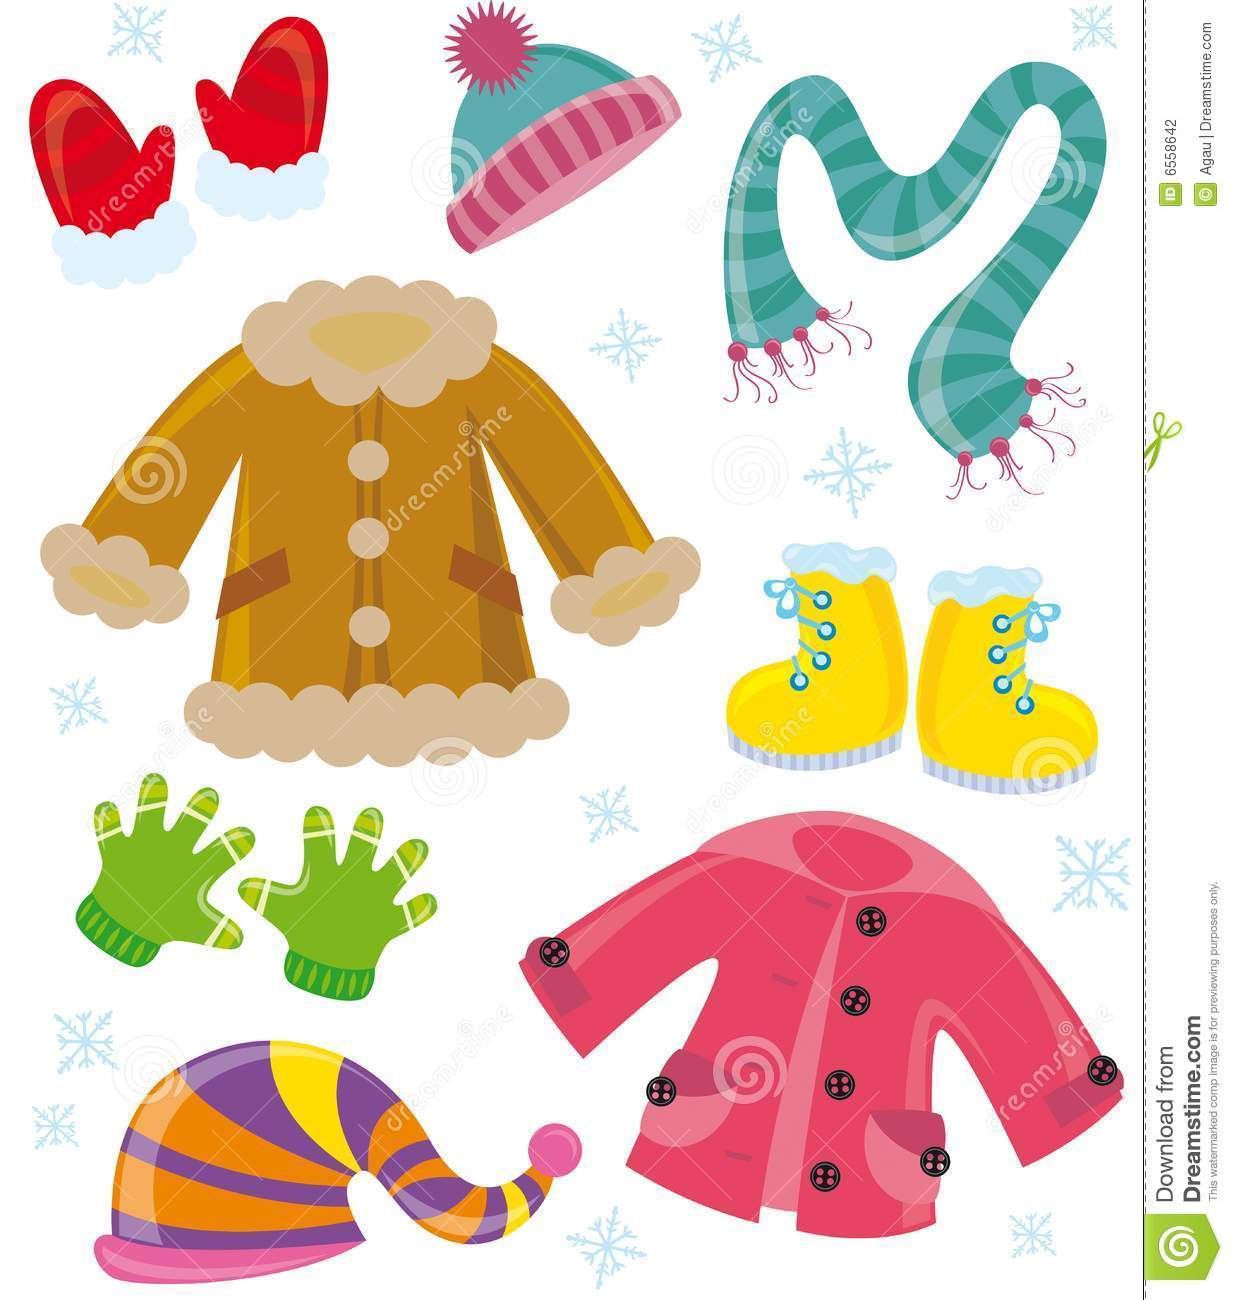 Winter clothes pictures clipart vector royalty free library Winter season clothes clipart 4 » Clipart Portal vector royalty free library